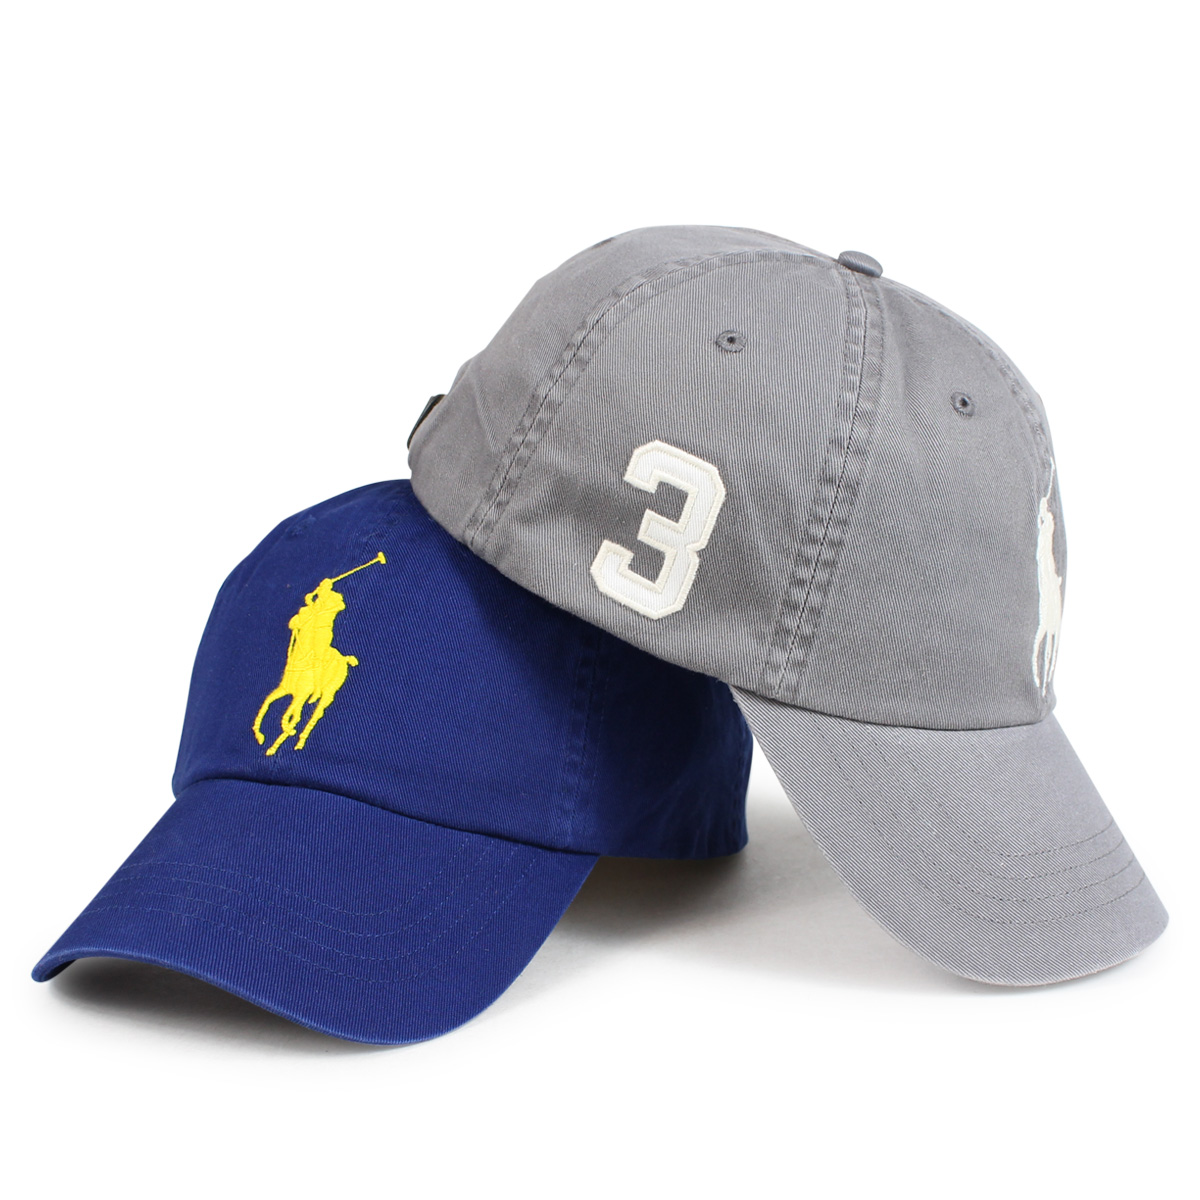 d23b975f POLO RALPH LAUREN BIG PONY COTTON CAP polo Ralph Lauren cap hat men gap Dis  cotton ...